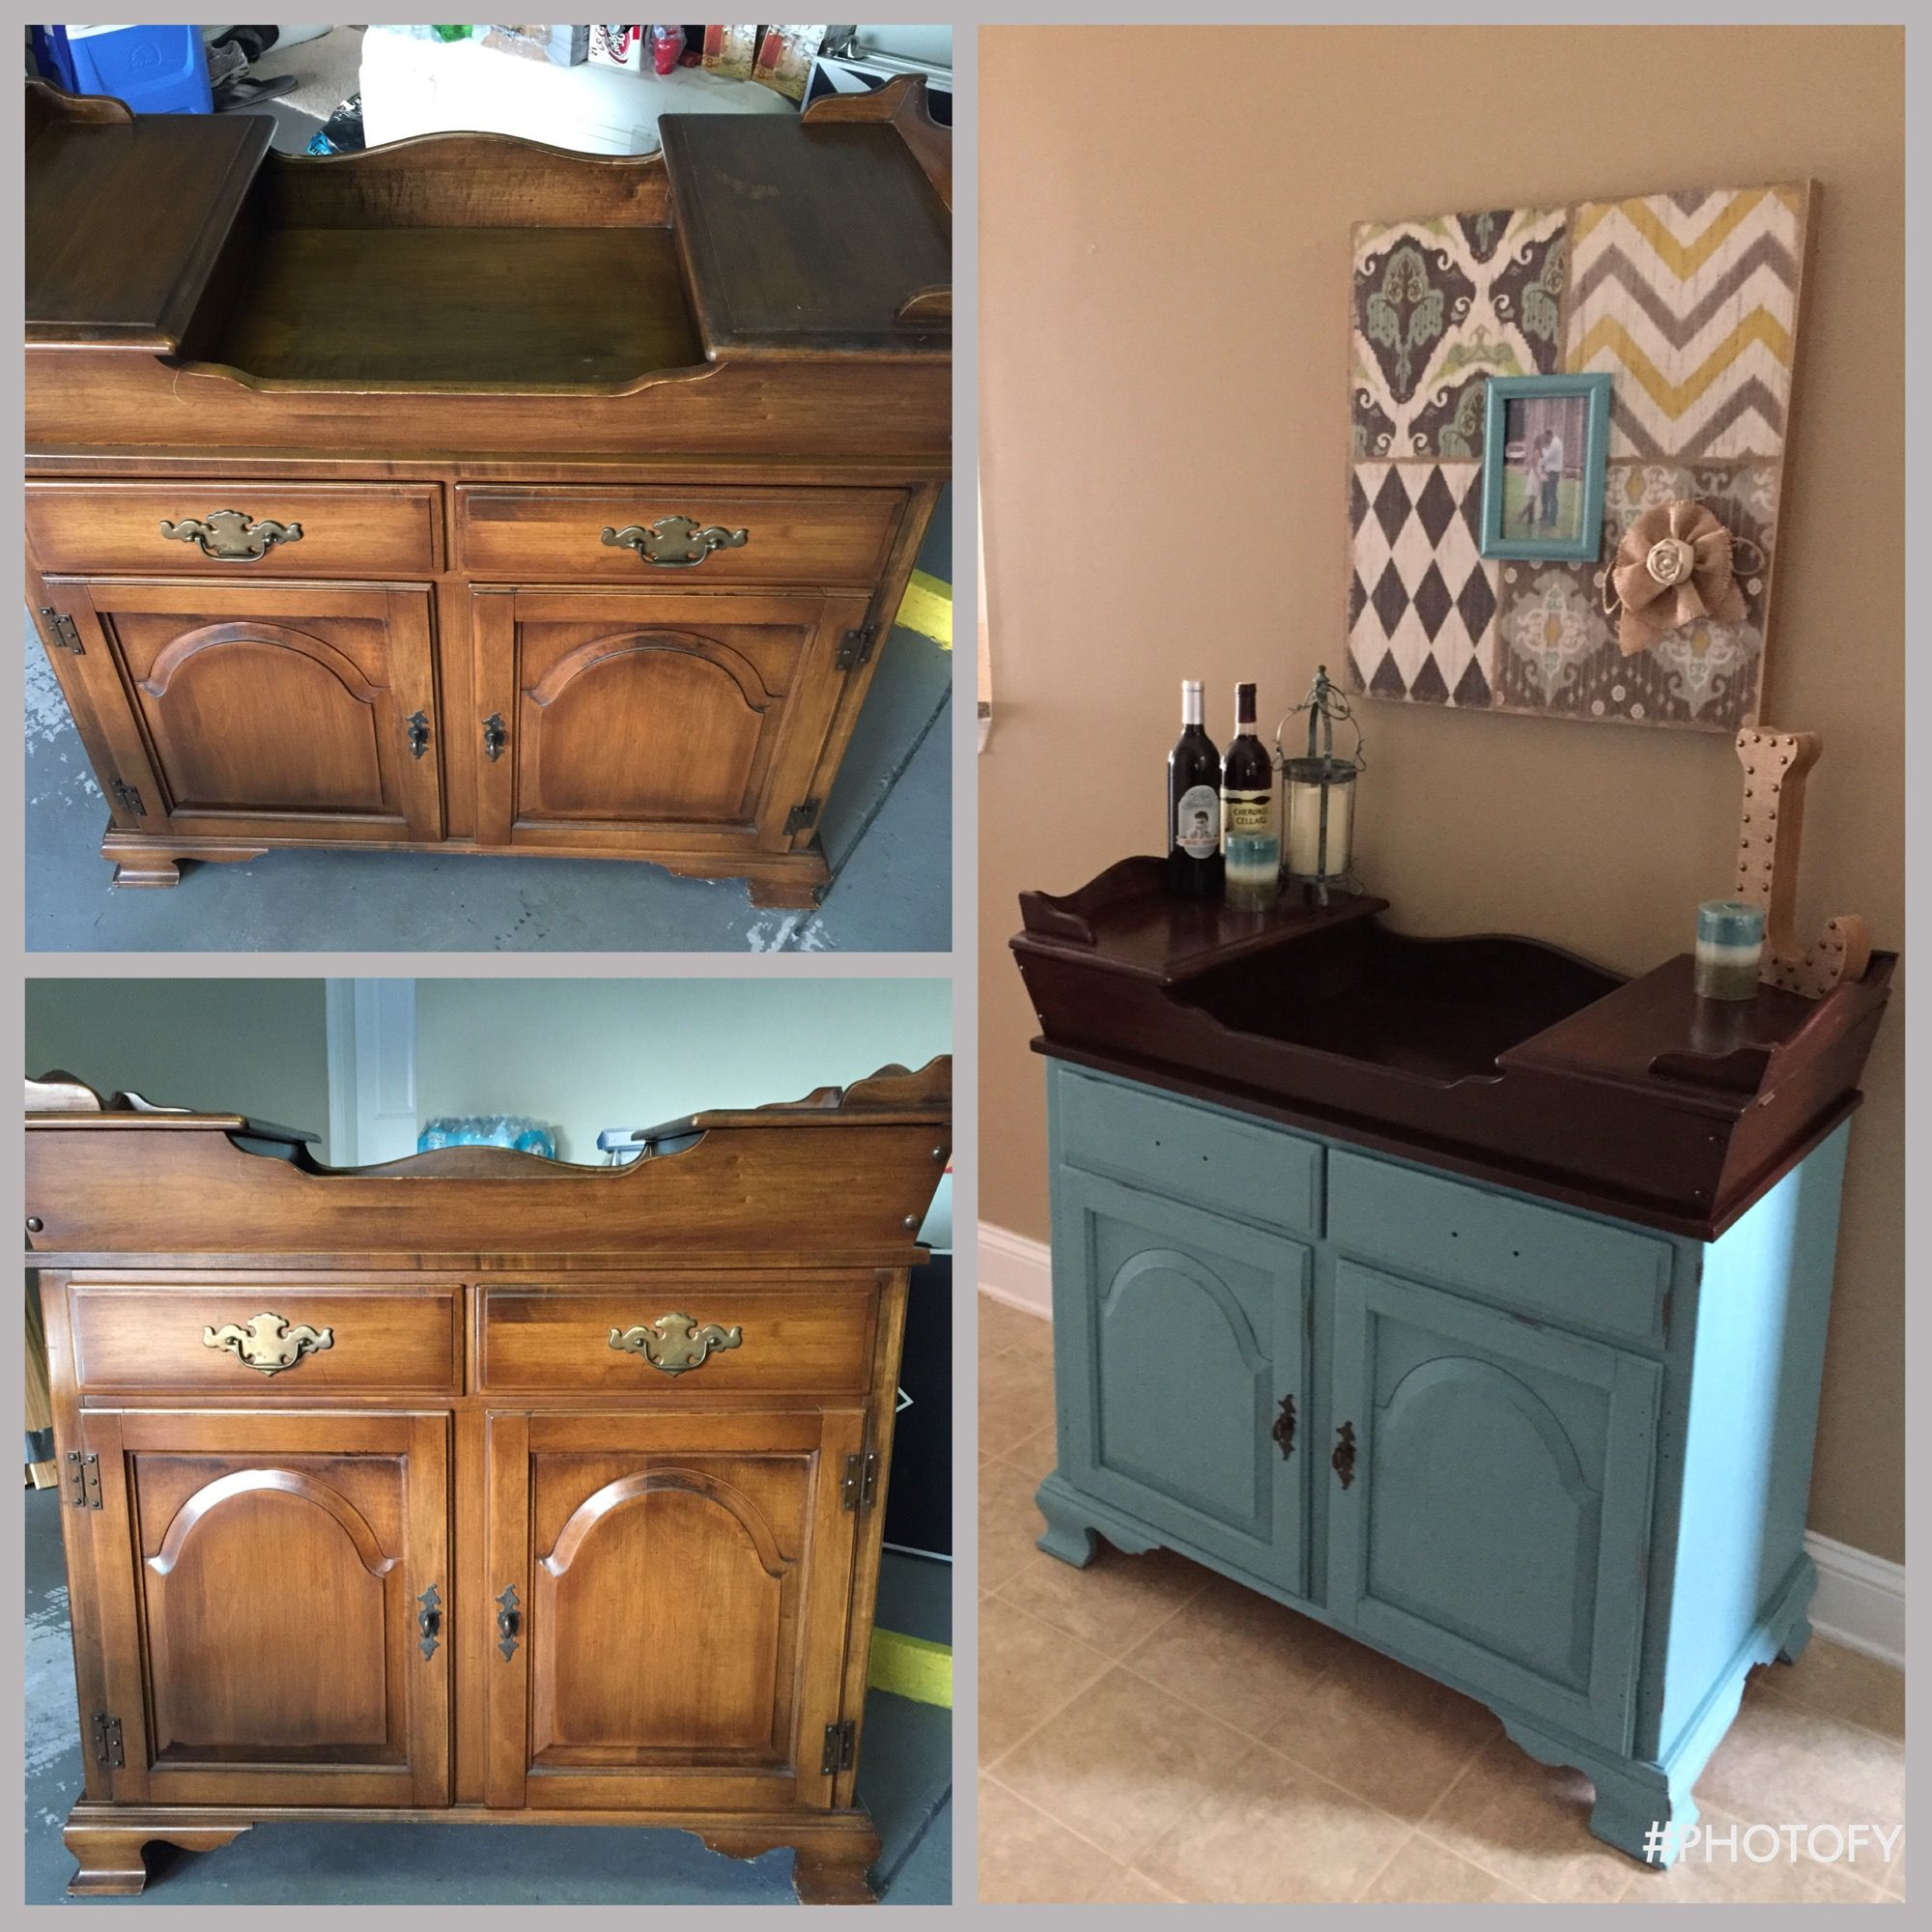 An Old Dry Sink That I Am Repurposing Into A Wine Bar At My